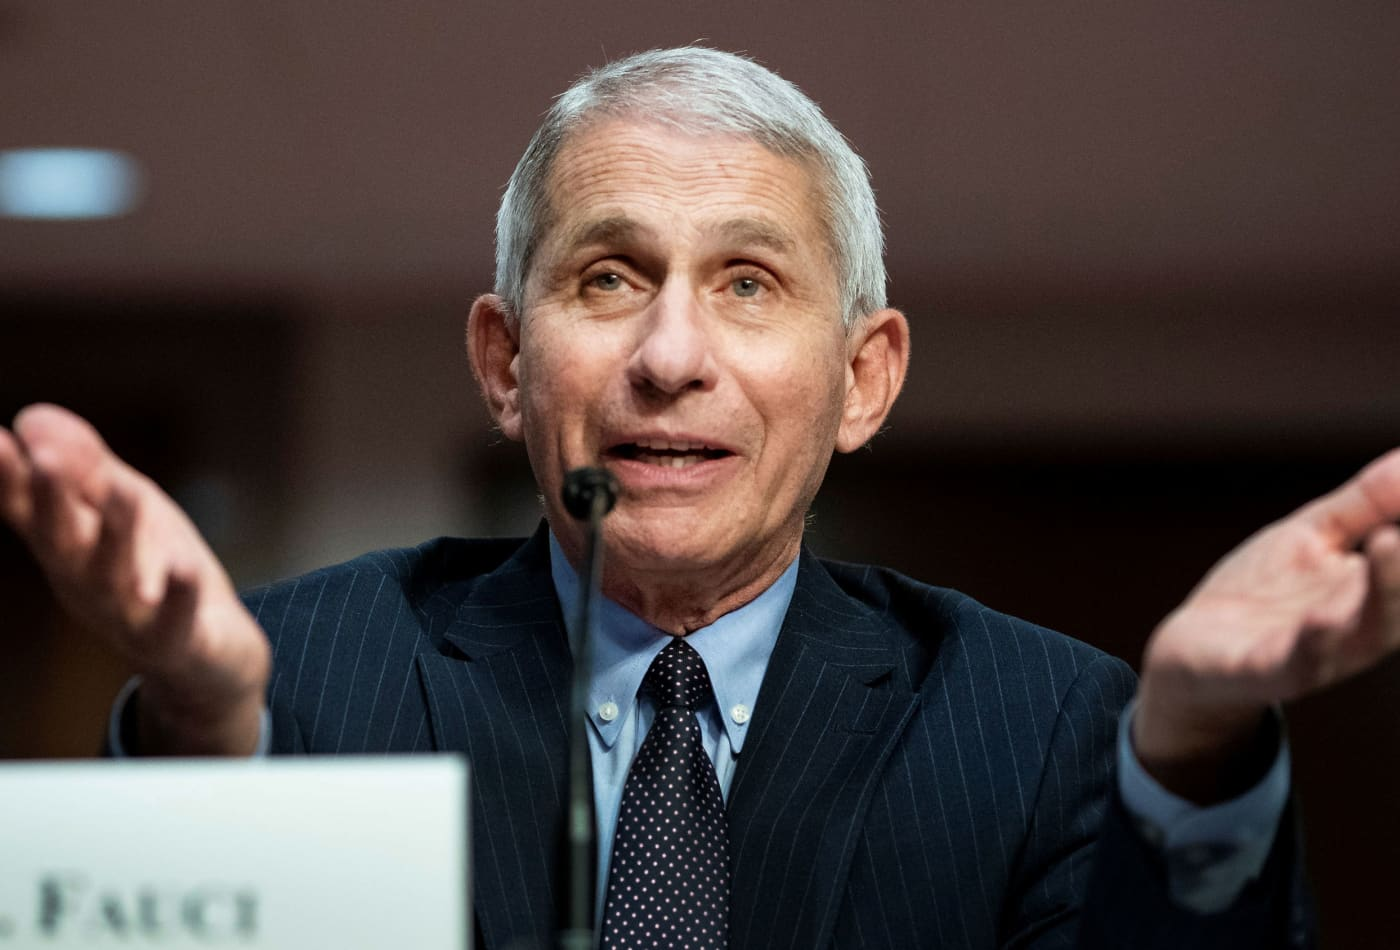 Dr. Fauci says his daughters need security as family continues to get death threats